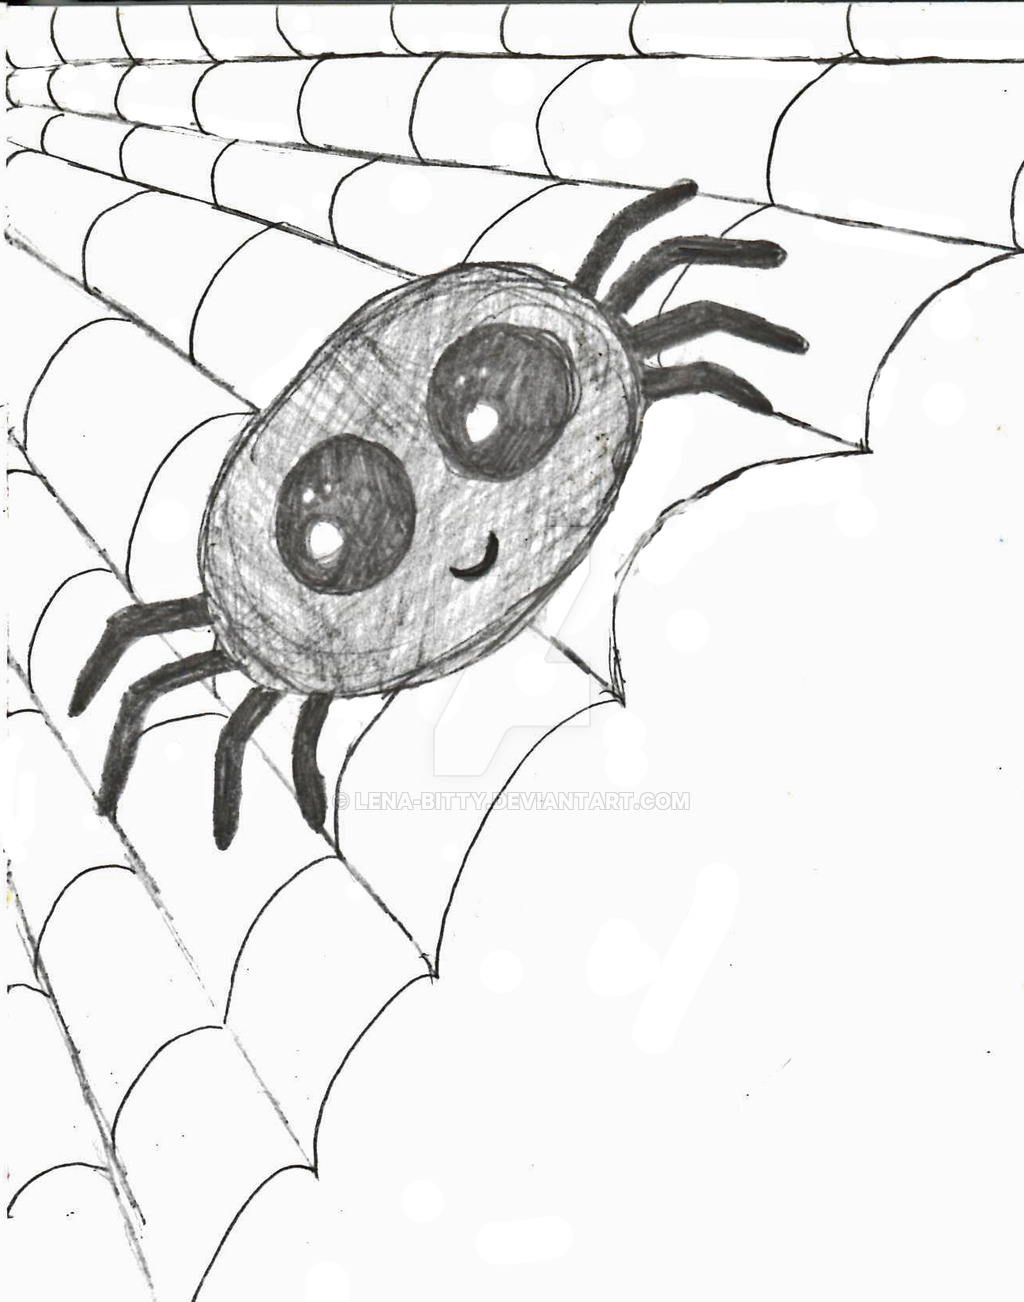 Drawn spider cute #3